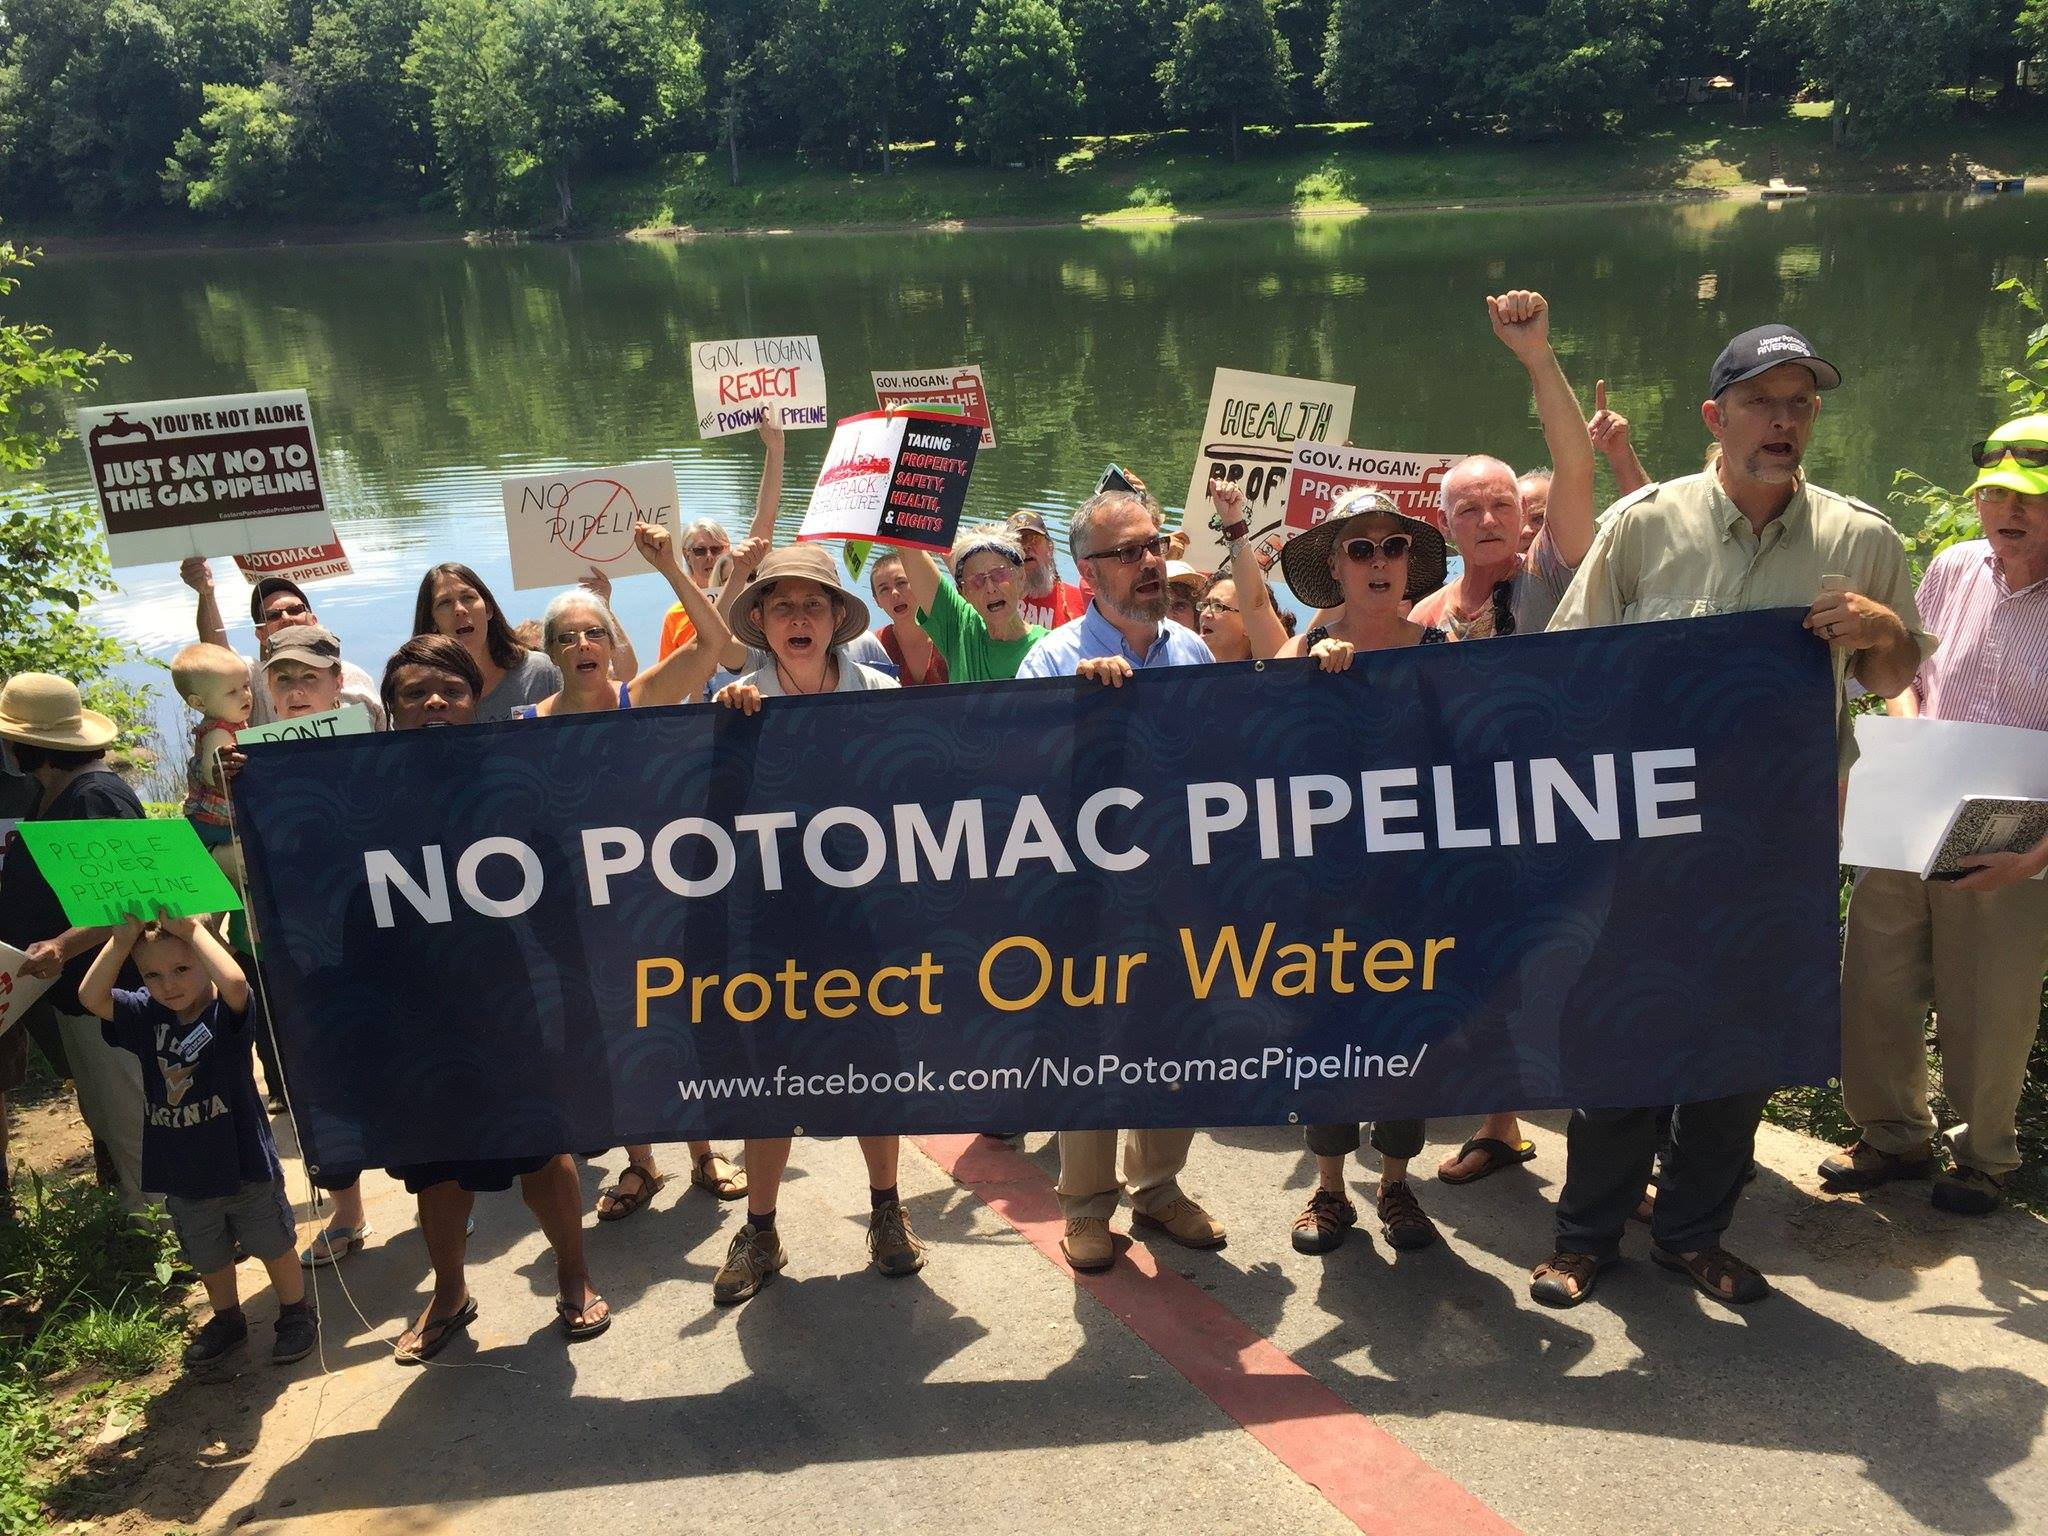 via No Potomac Pipeline Facebook